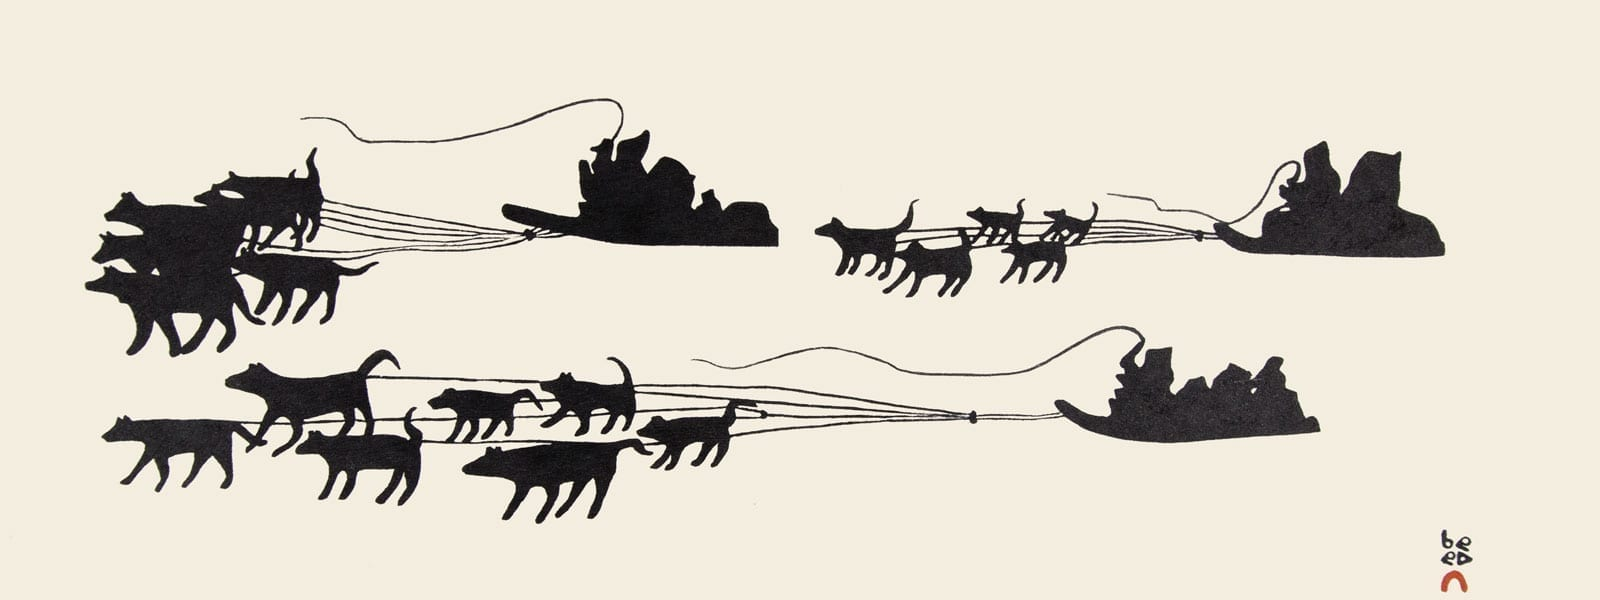 2018 Cape Dorset Print Collection Sled Team